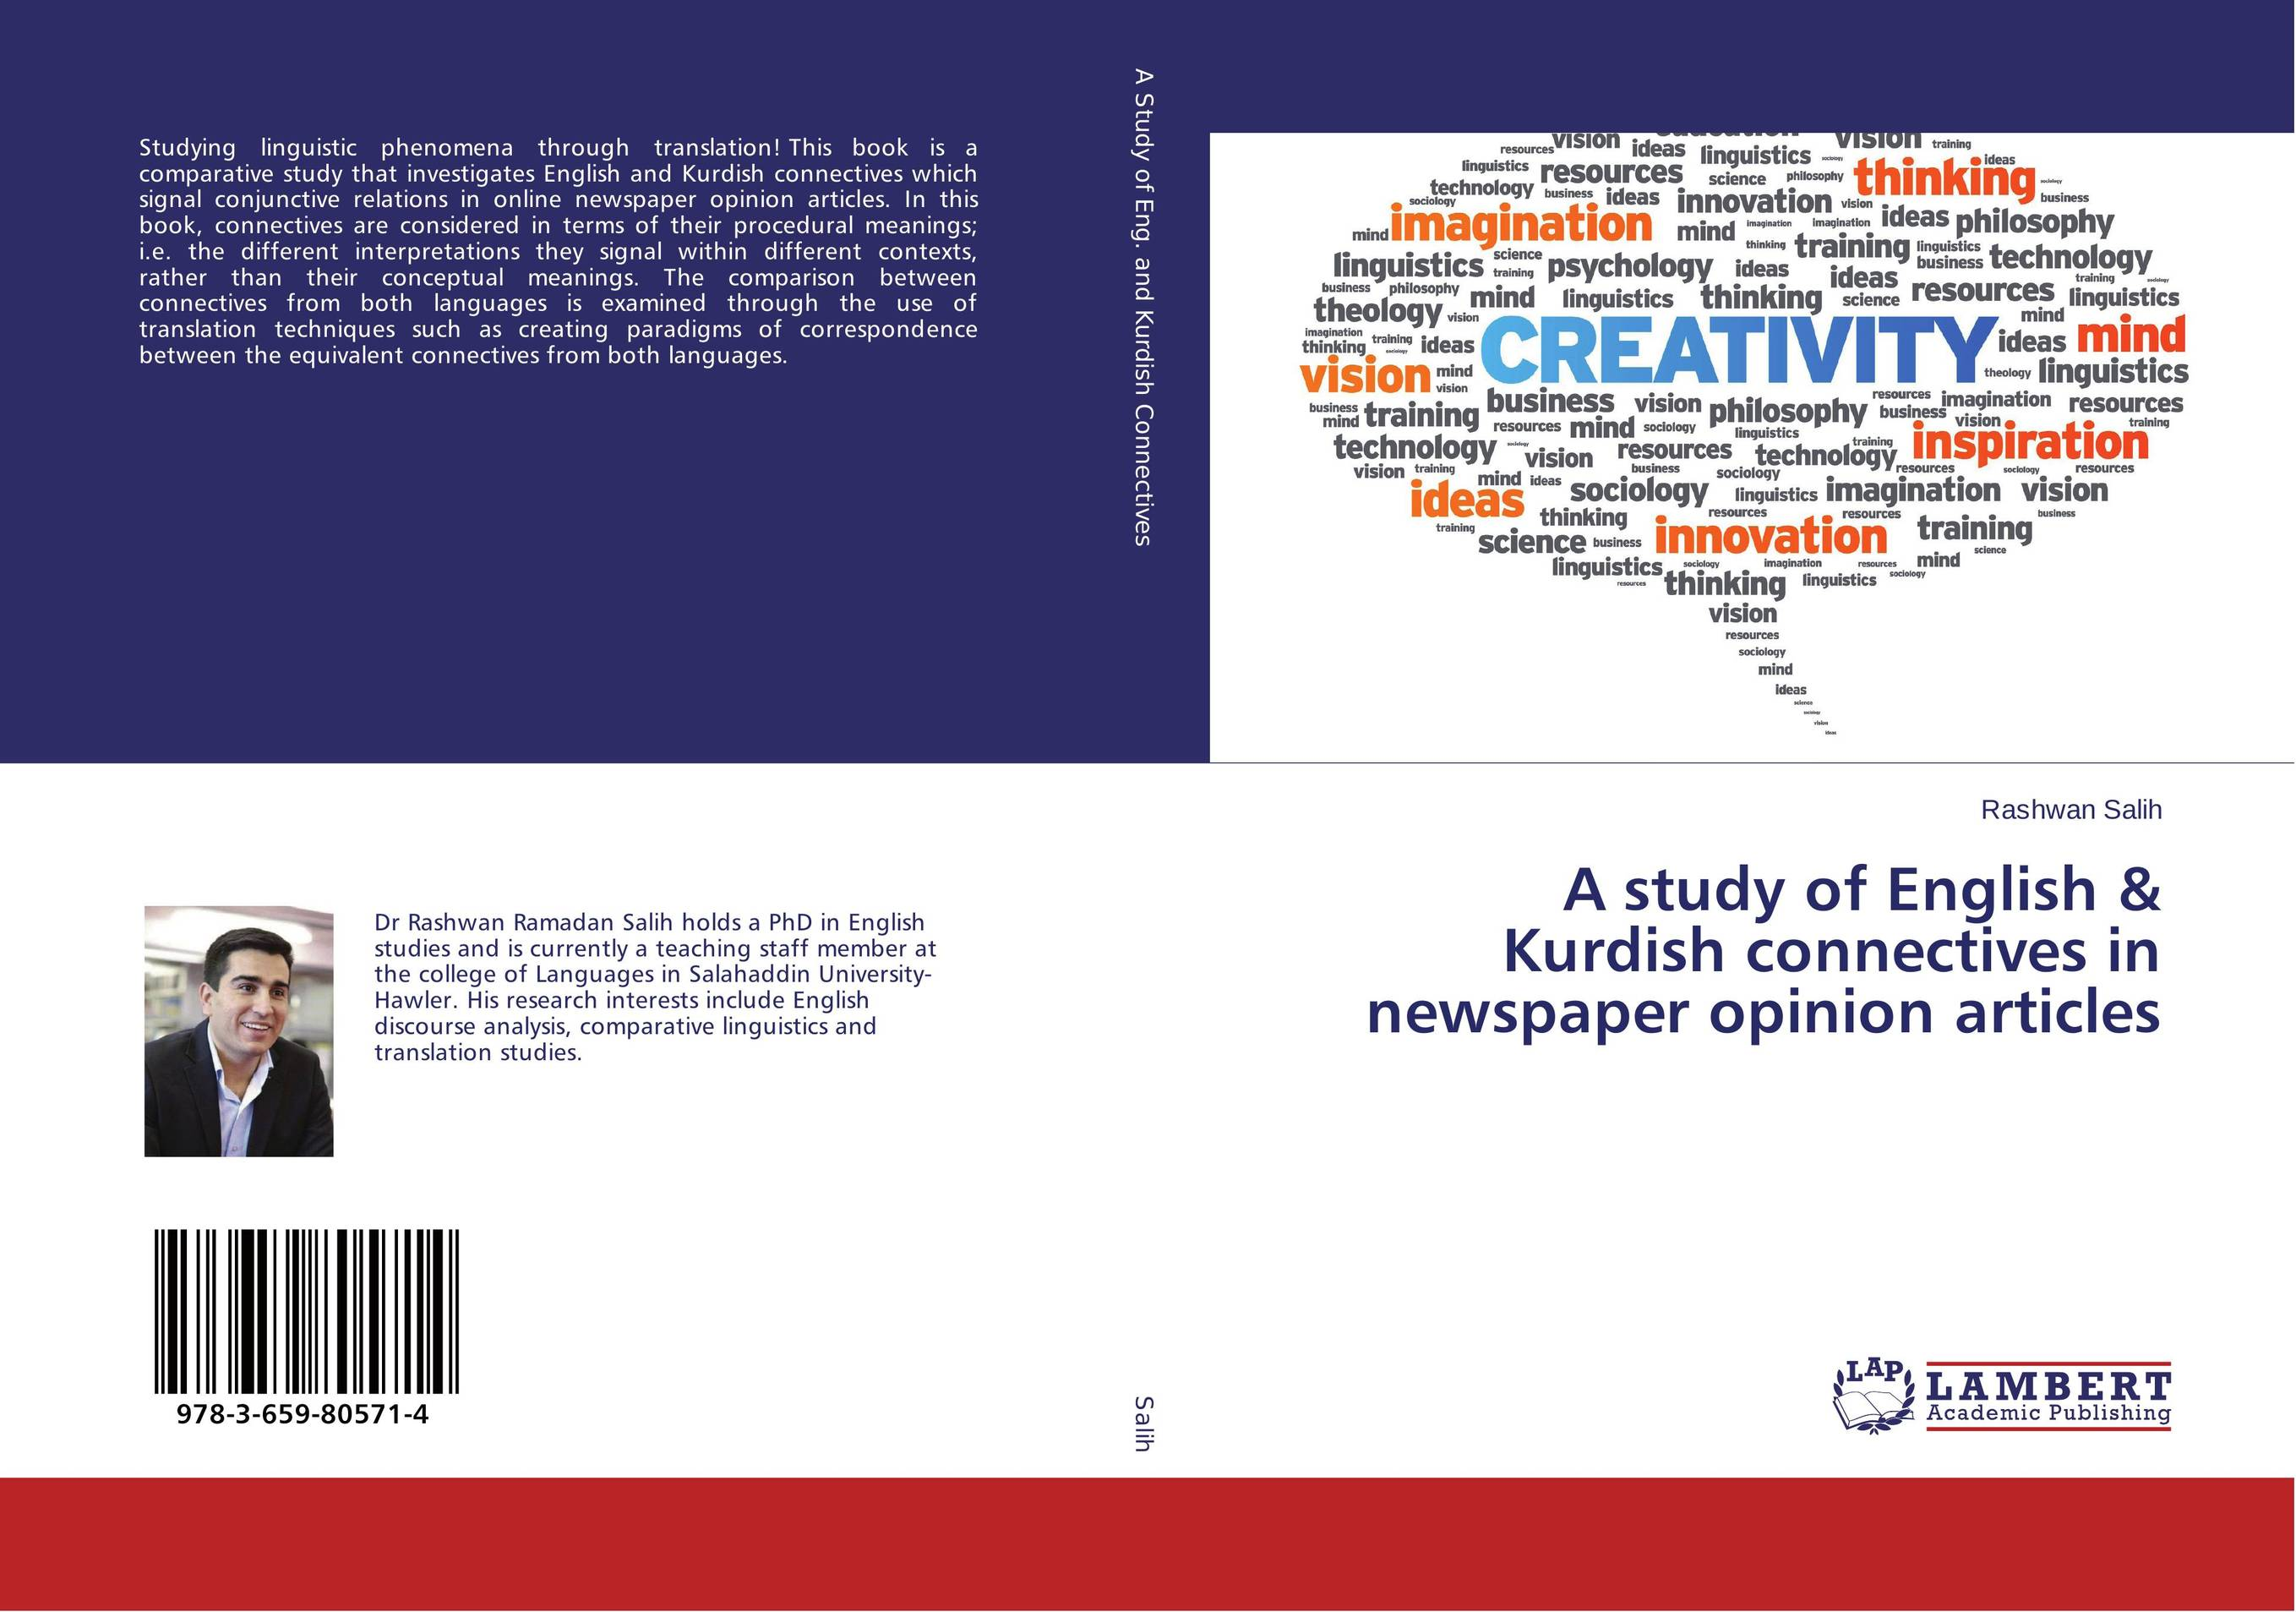 A study of English & Kurdish connectives in newspaper opinion articles e hutchins culture and inference – a trobriand case study